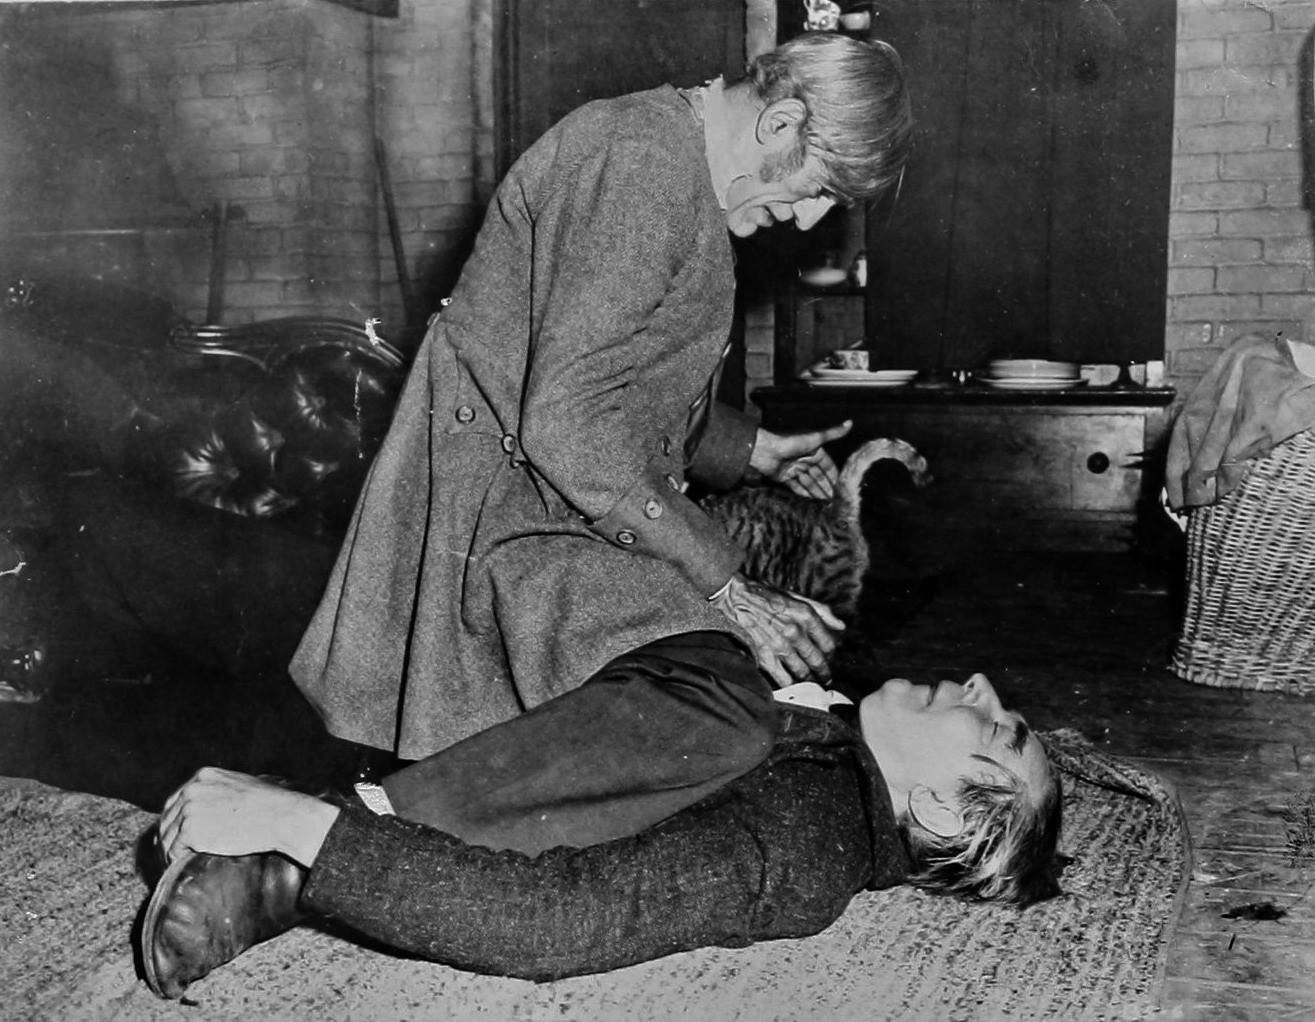 Boris Karloff preparing to harvest the body of Bela Lugosi